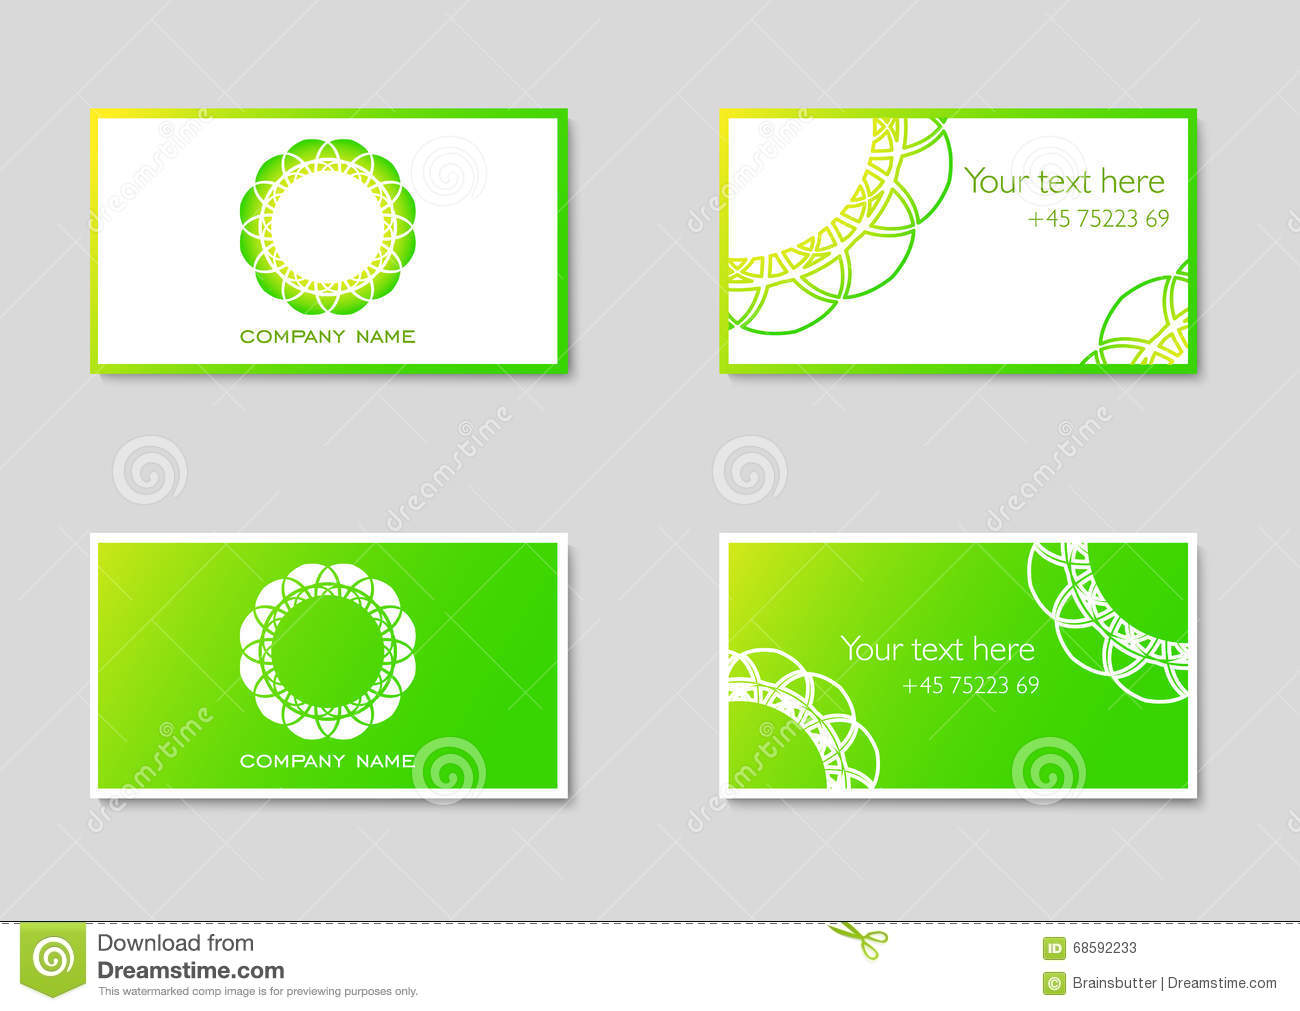 Two vector business card templates with company logo stock vector two vector business card templates with company logo magicingreecefo Image collections